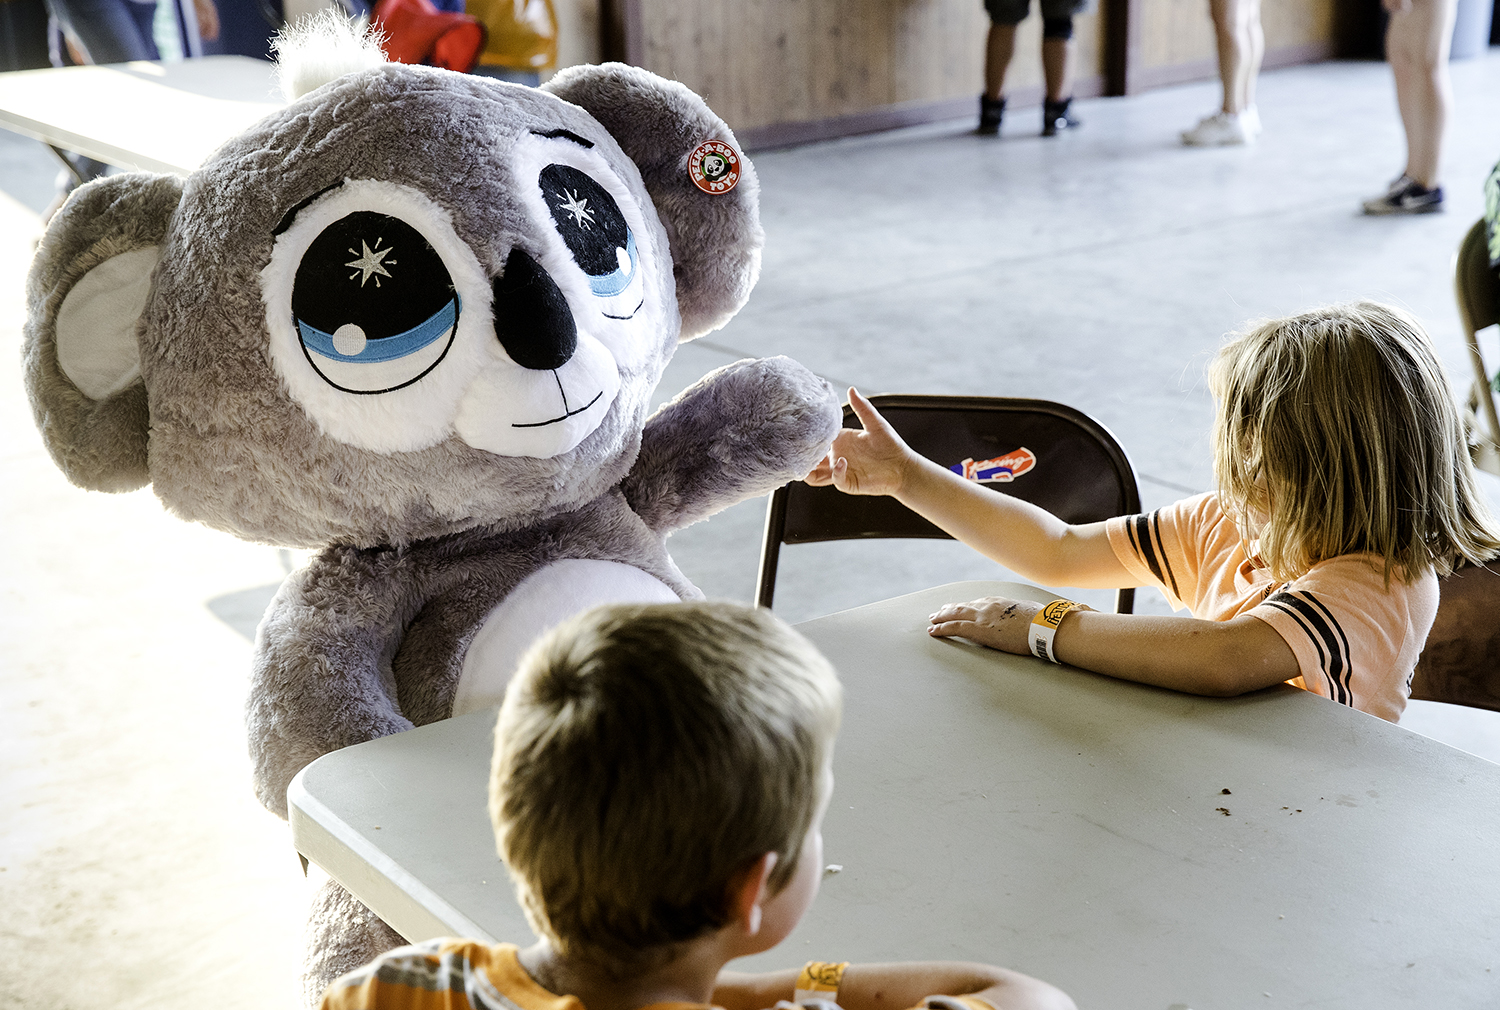 Cellie McFarland shakes hands with the giant stuffed koala bear her grandfather Bill McFarland won at the Illinois State Fair Monday, Aug. 13, 2018. [Ted Schurter/The State Journal-Register]